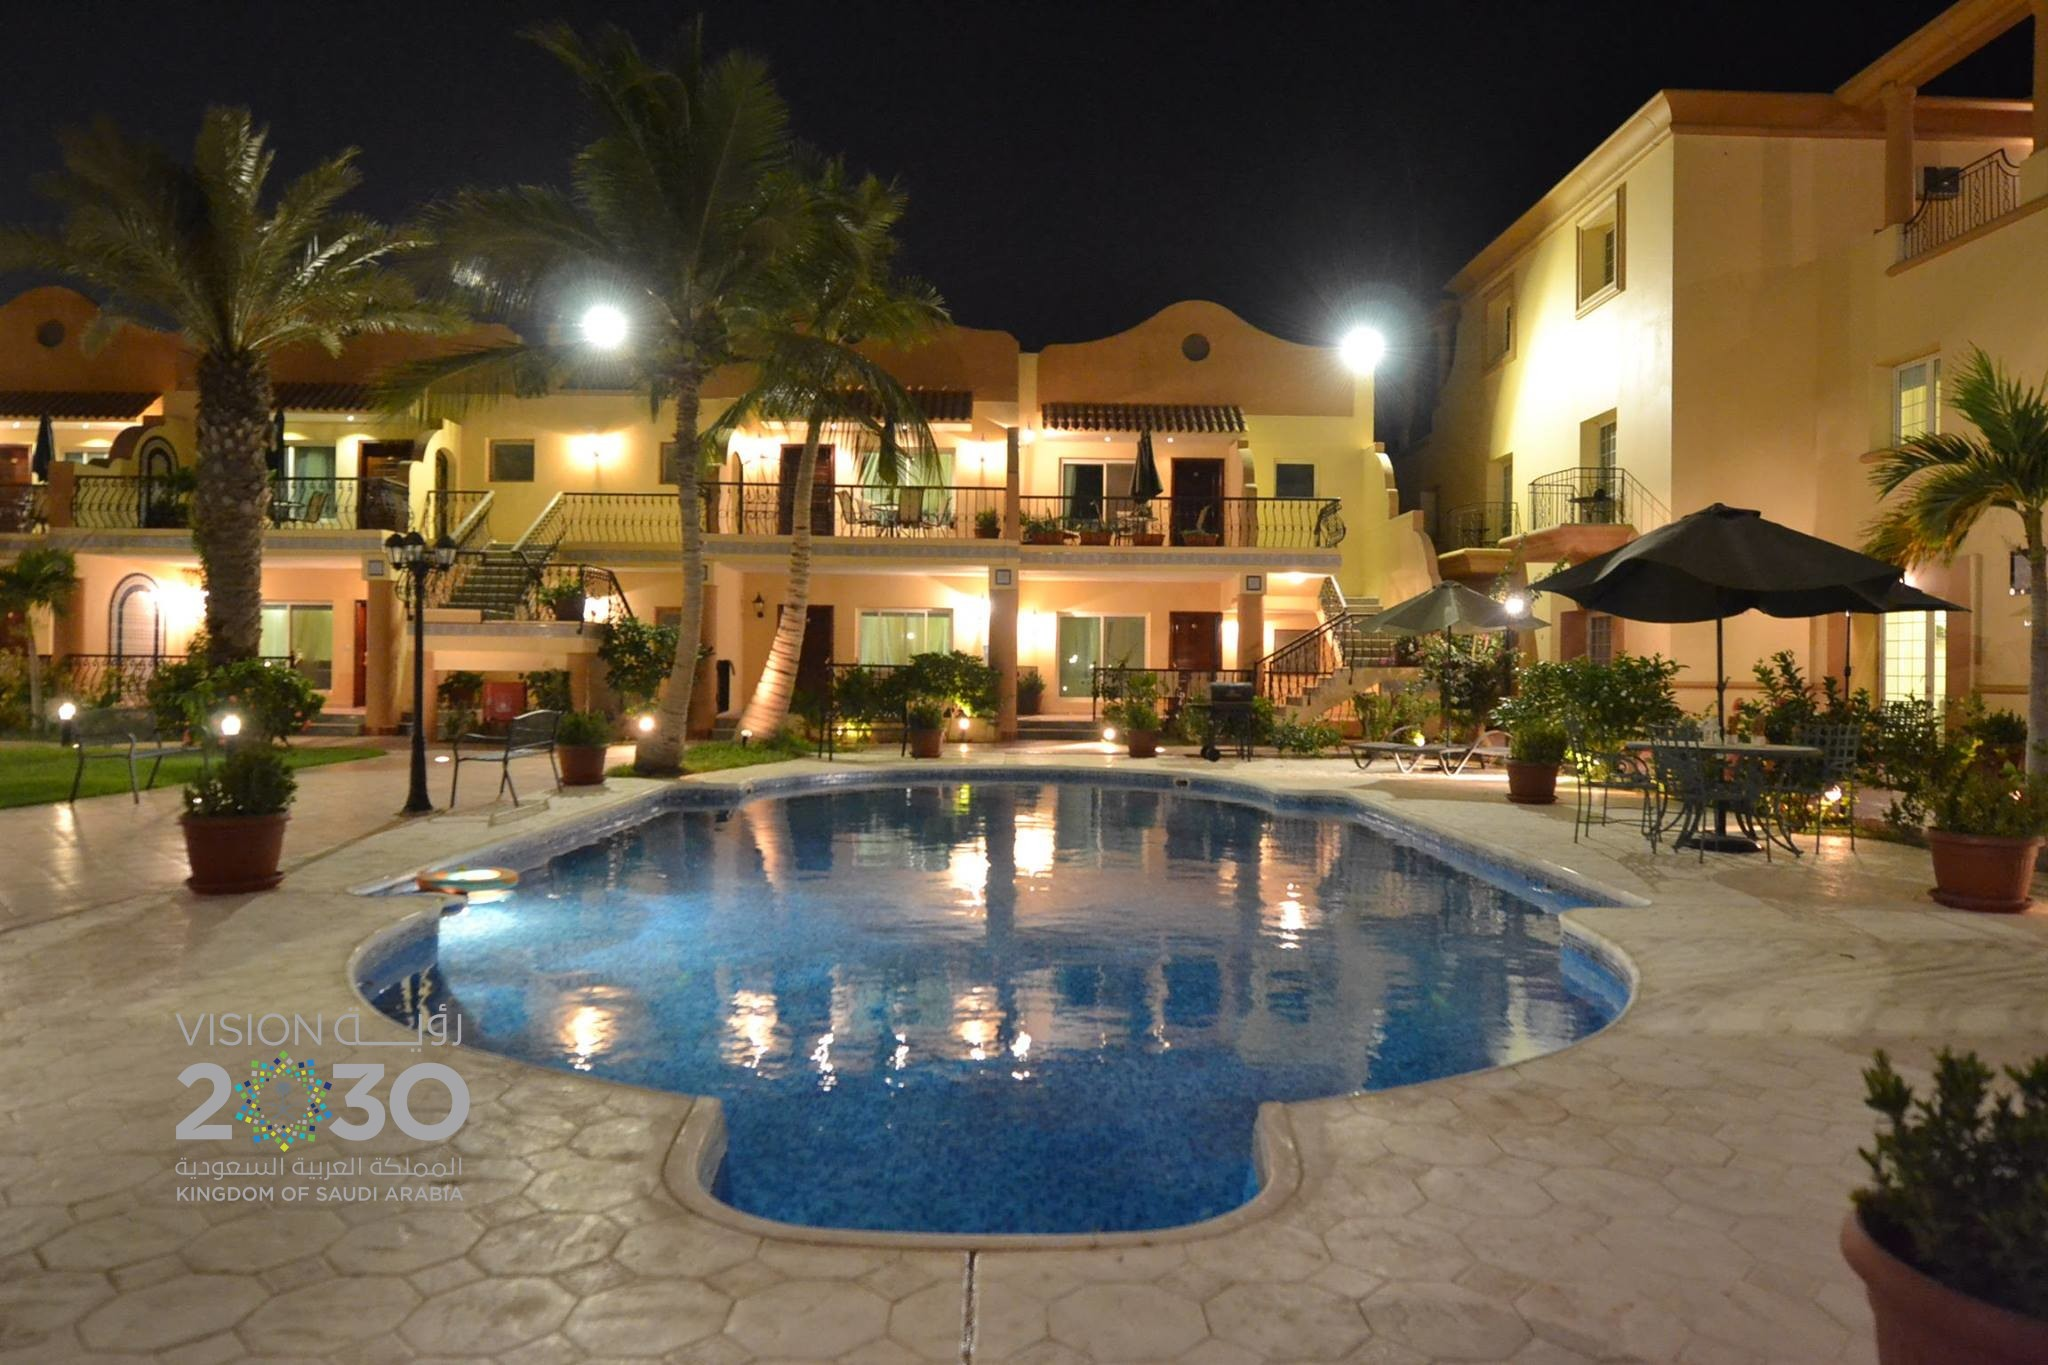 <br /> <b>Notice</b>:  Undefined variable: https://s3-ap-southeast-1.amazonaws.com/mycrm-pro-accounts-v2/property/full/1908/7pD3iJEfeEEkNFm7.jpeg in <b>/home/a2erfg/public_html/livingcompound.com/index.php</b> on line <b>813</b><br />